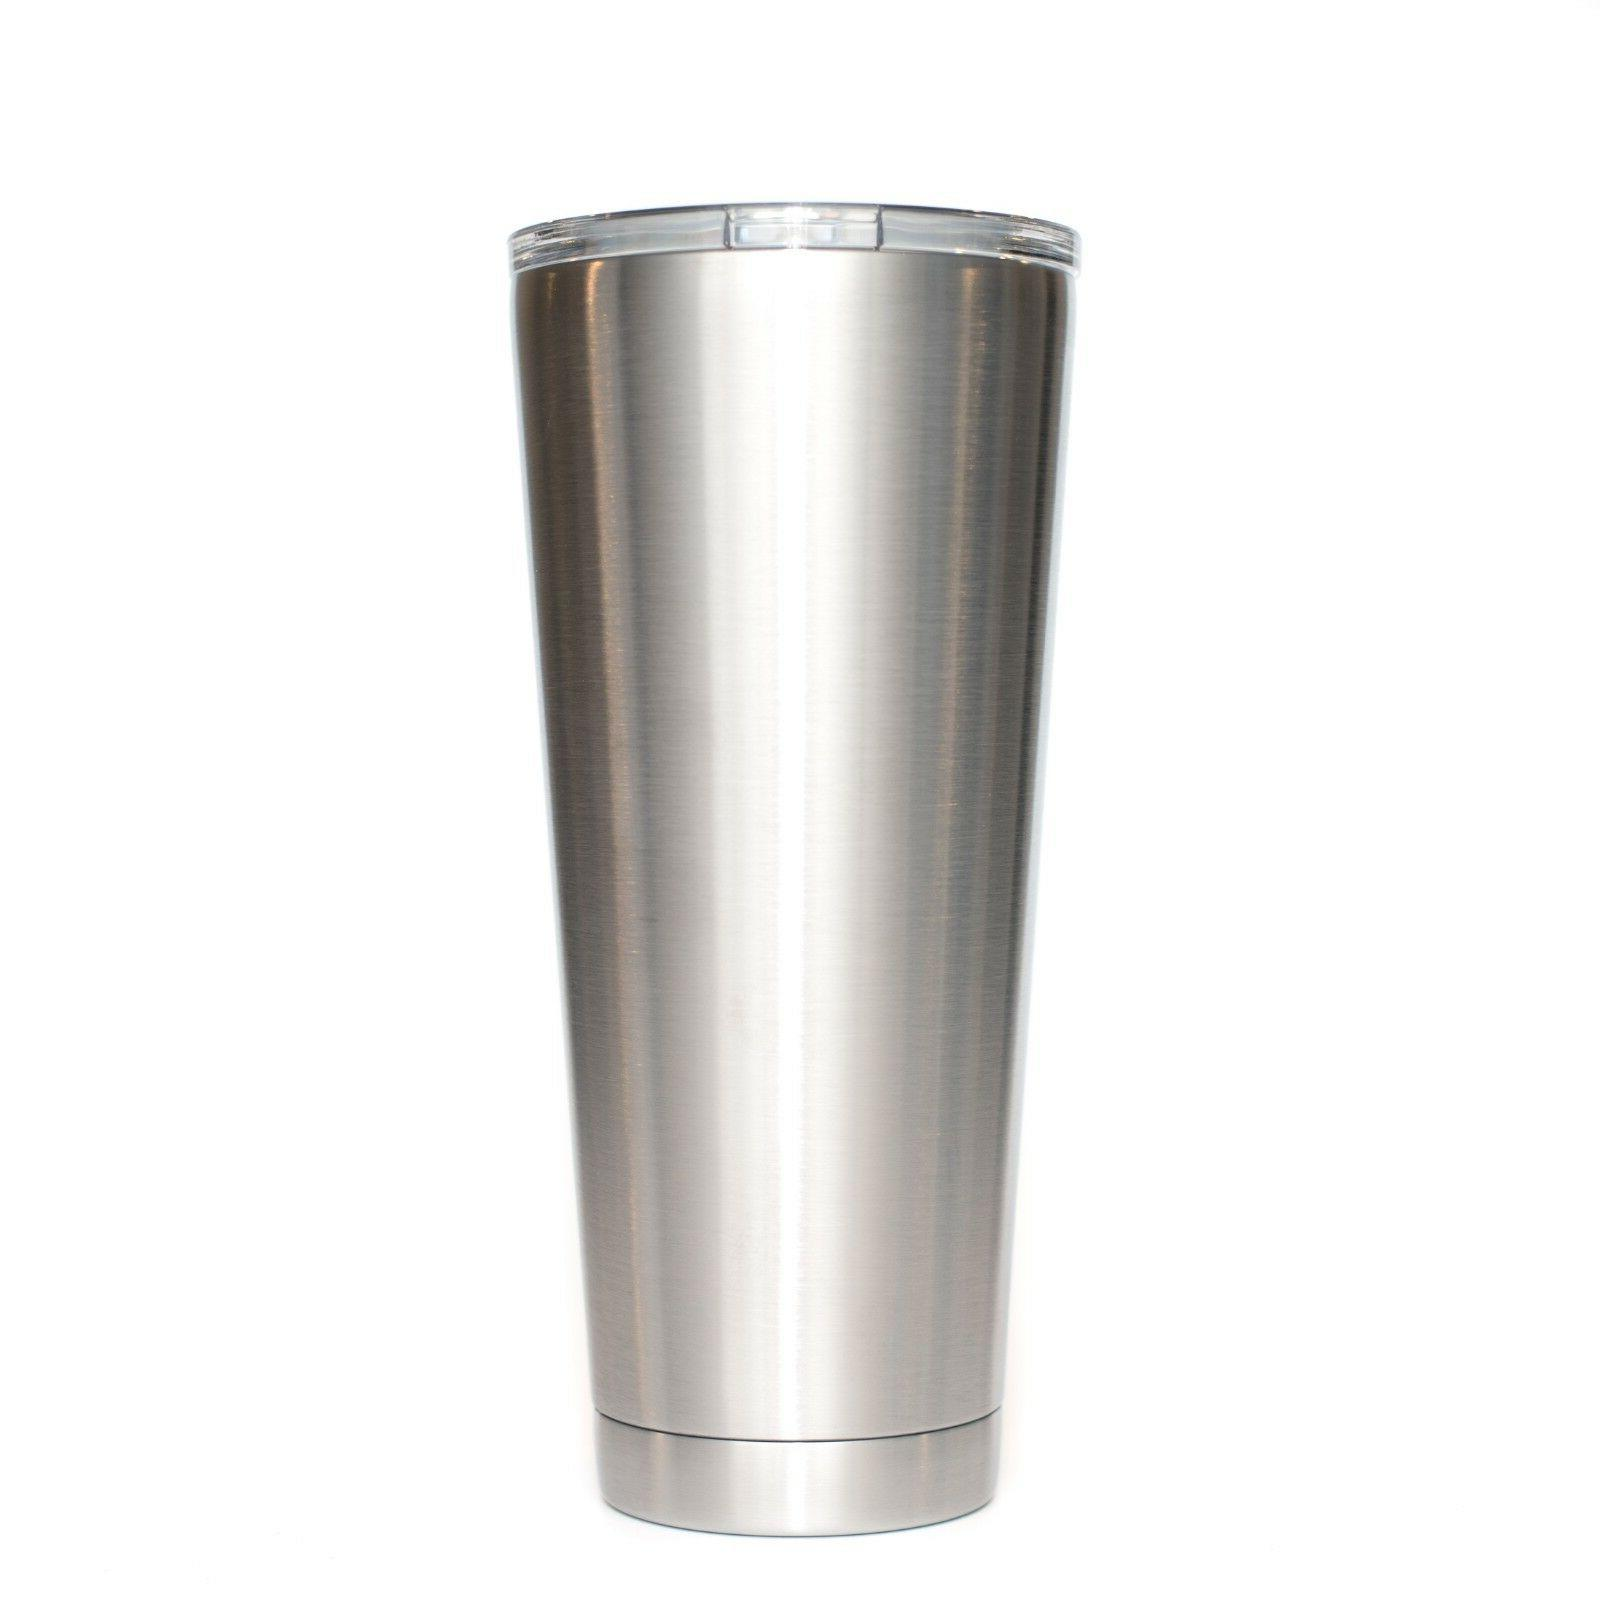 40 oz tumbler stainless steel vacuum insulated